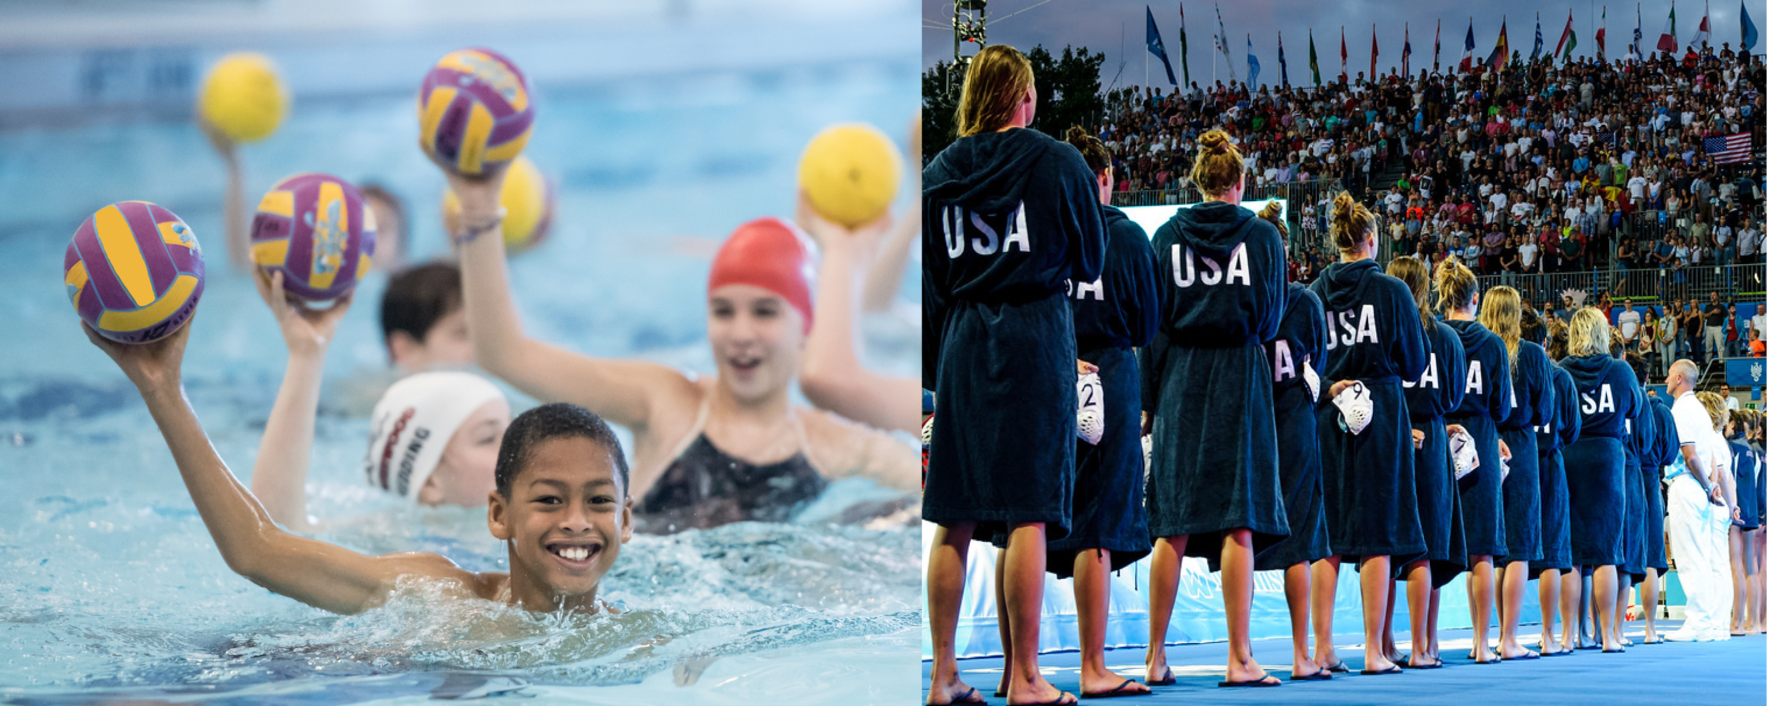 One Commitment to Excellence, From Grassroots to Gold Medals image